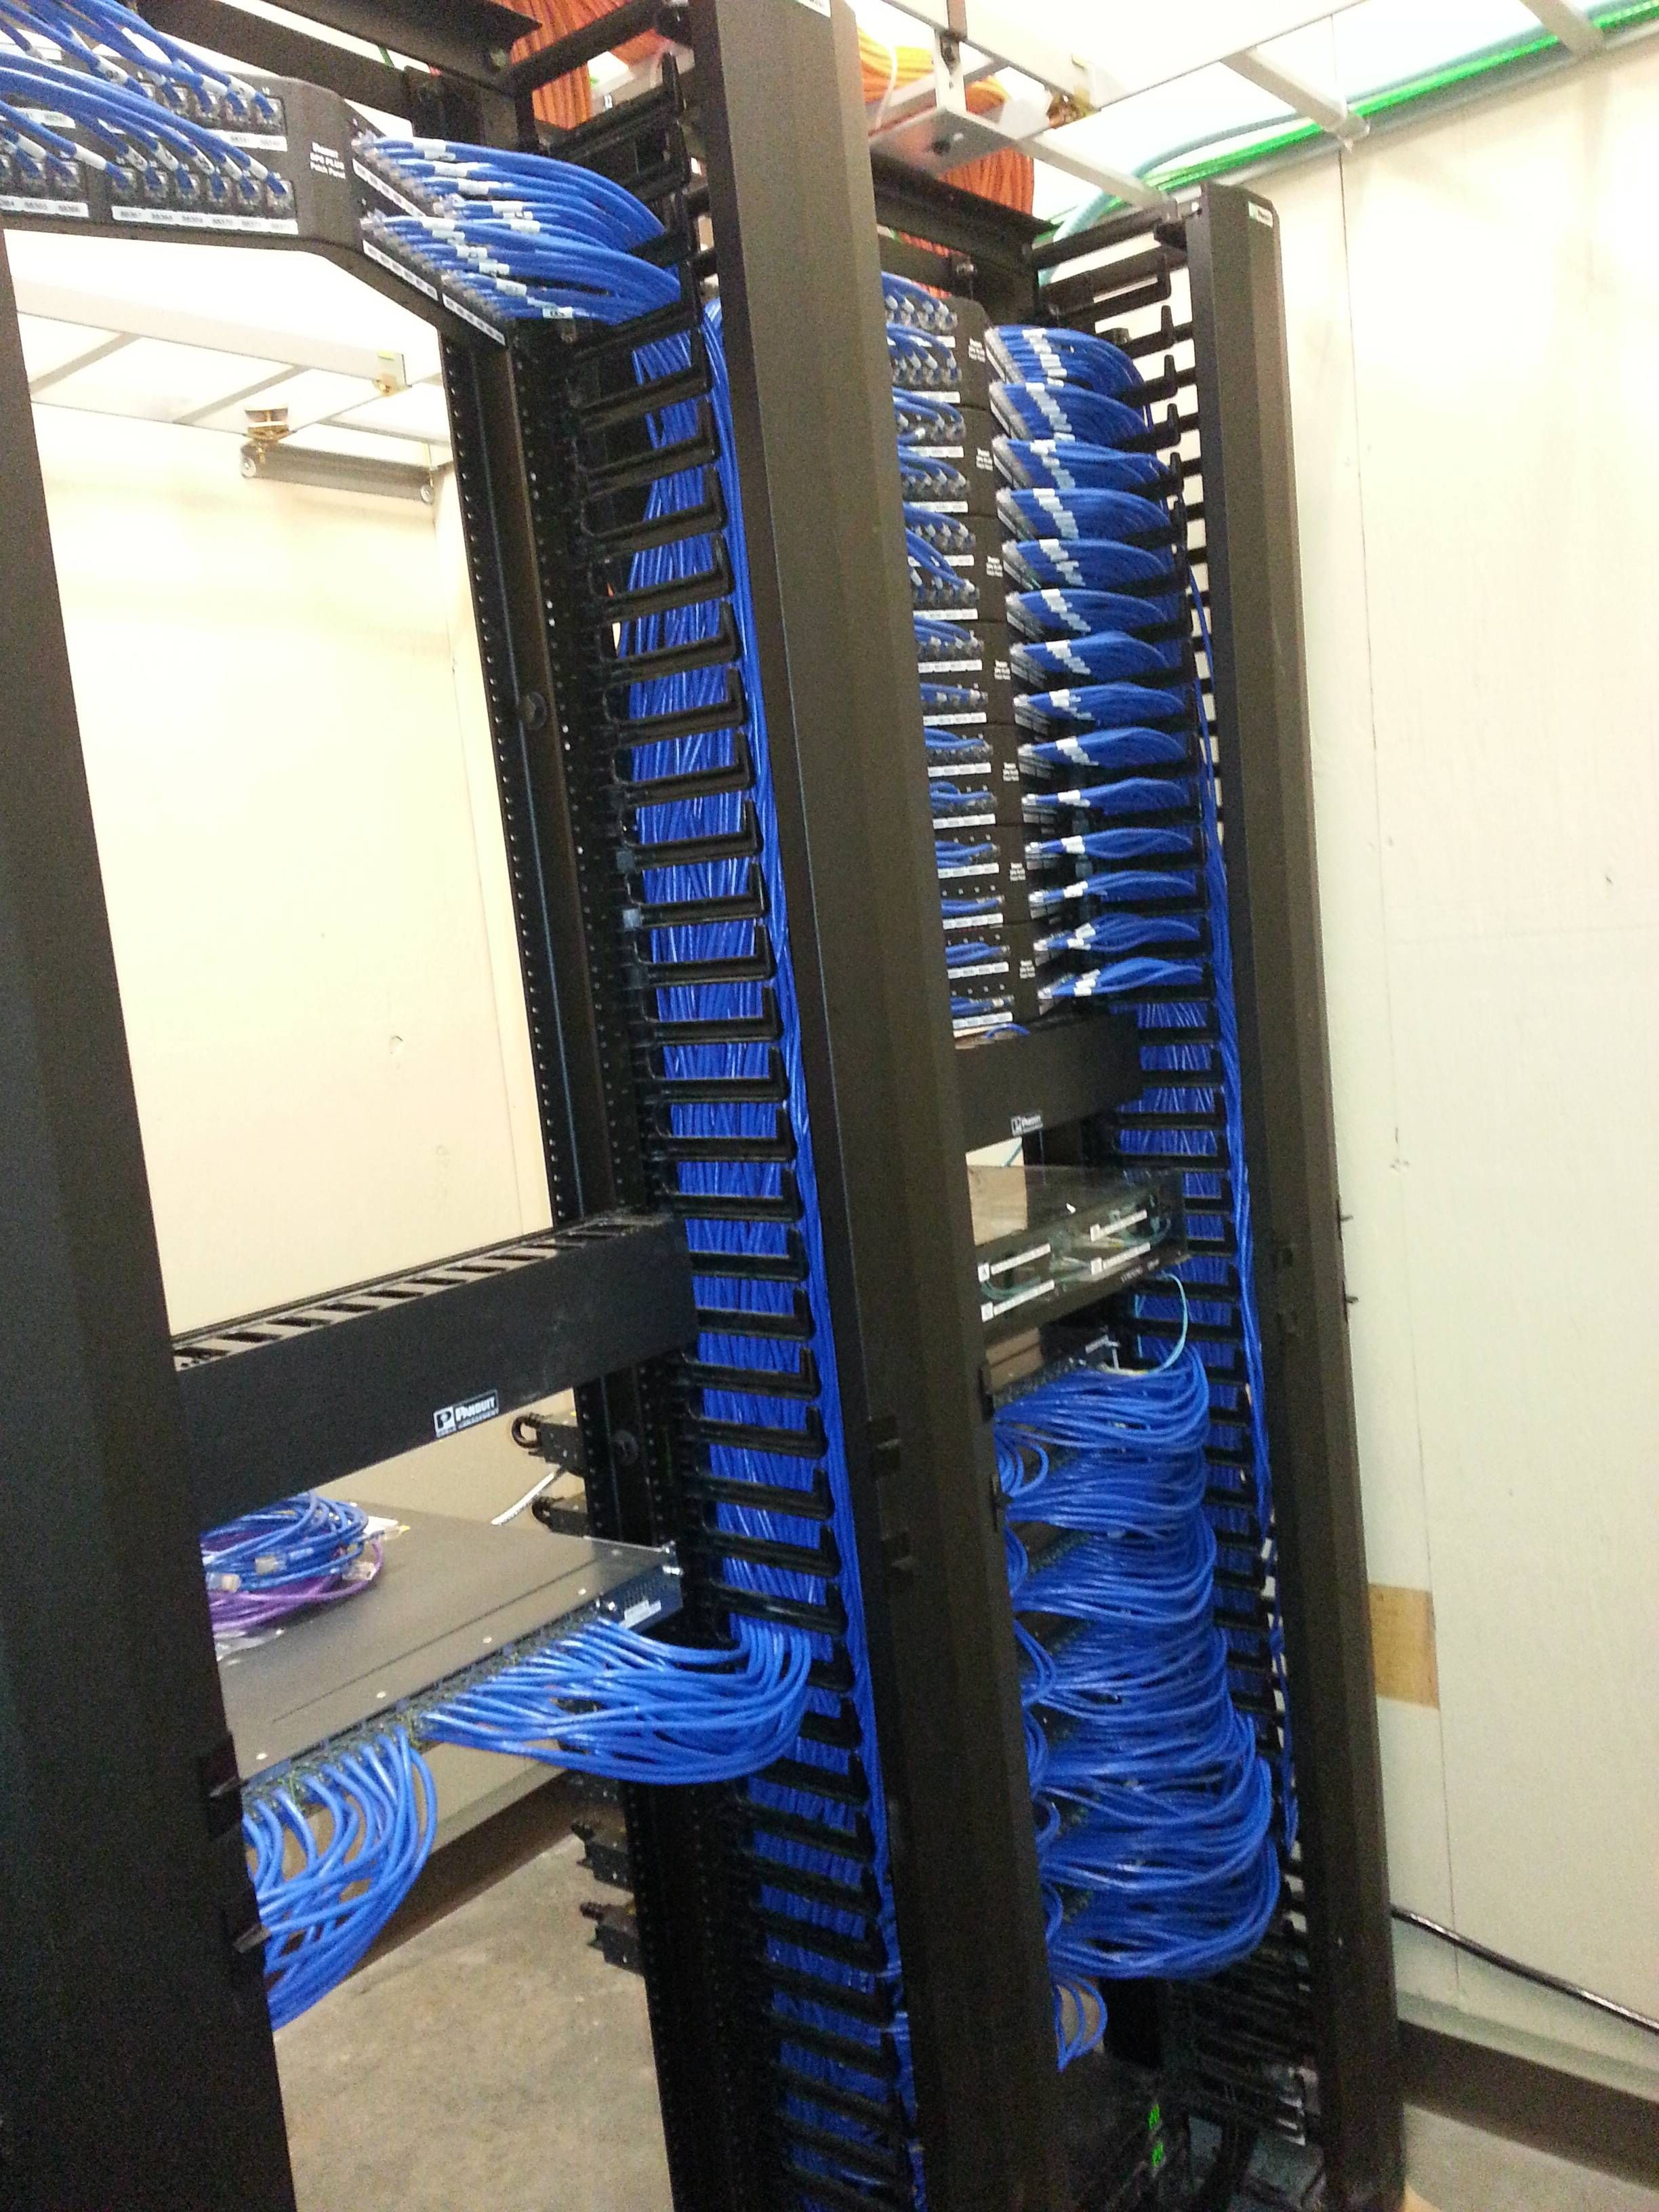 clean patch panel closet install blue ethernet cables and patch rh pinterest com Wire Closet Racks Wiring Closet Diagram